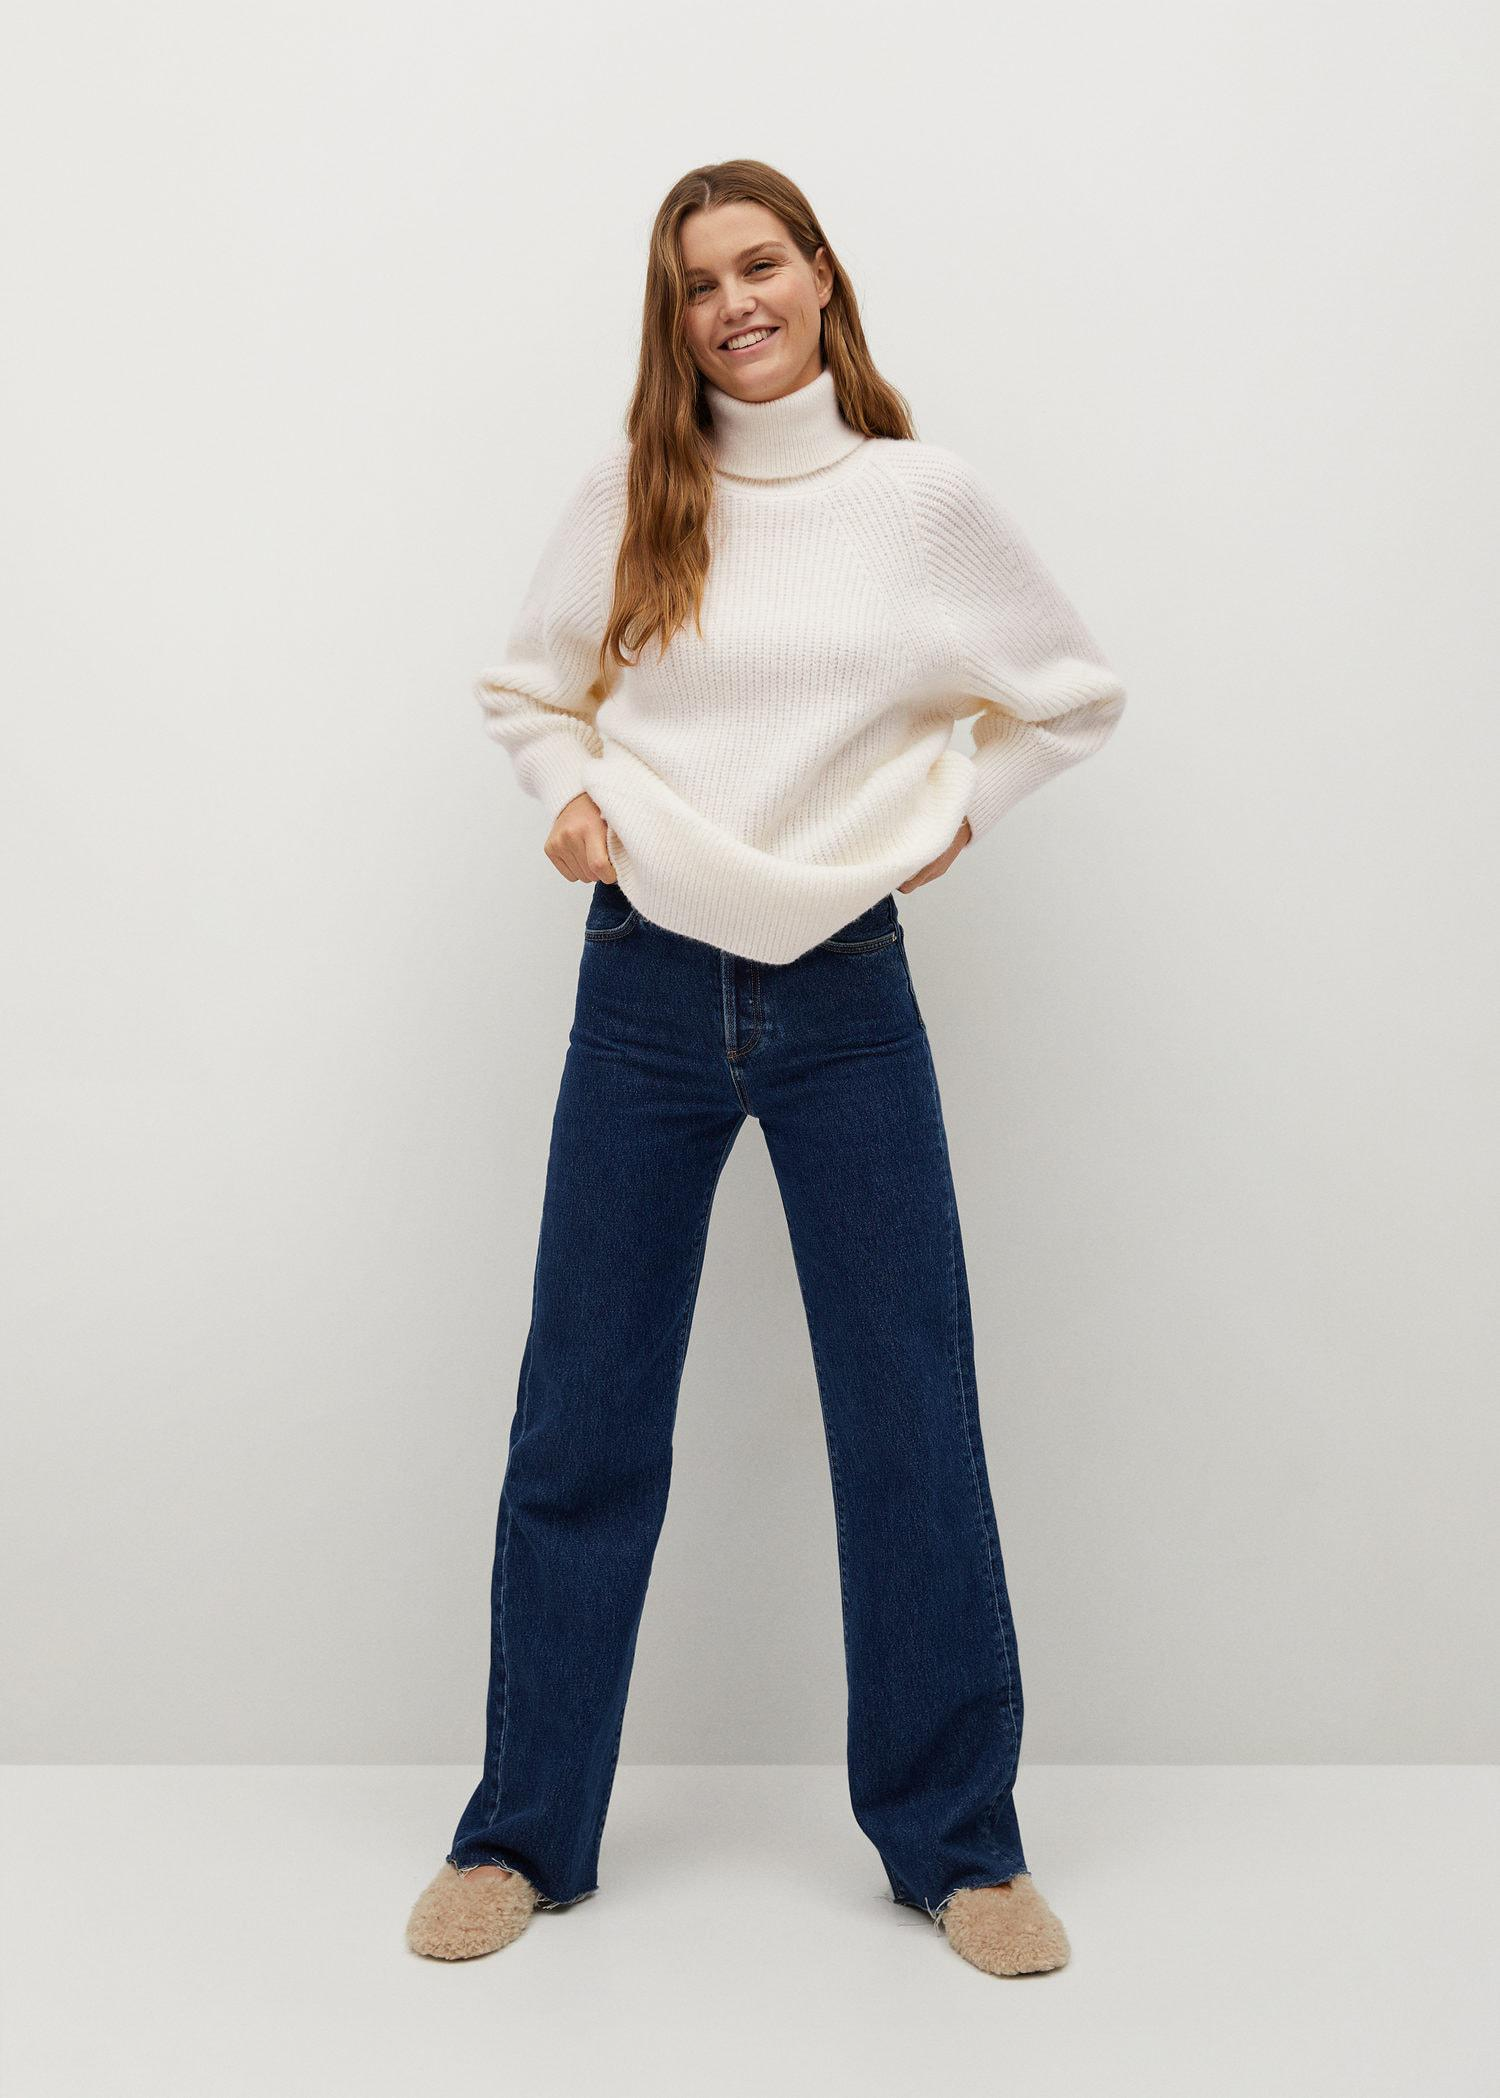 Turtleneck knitted sweater 1